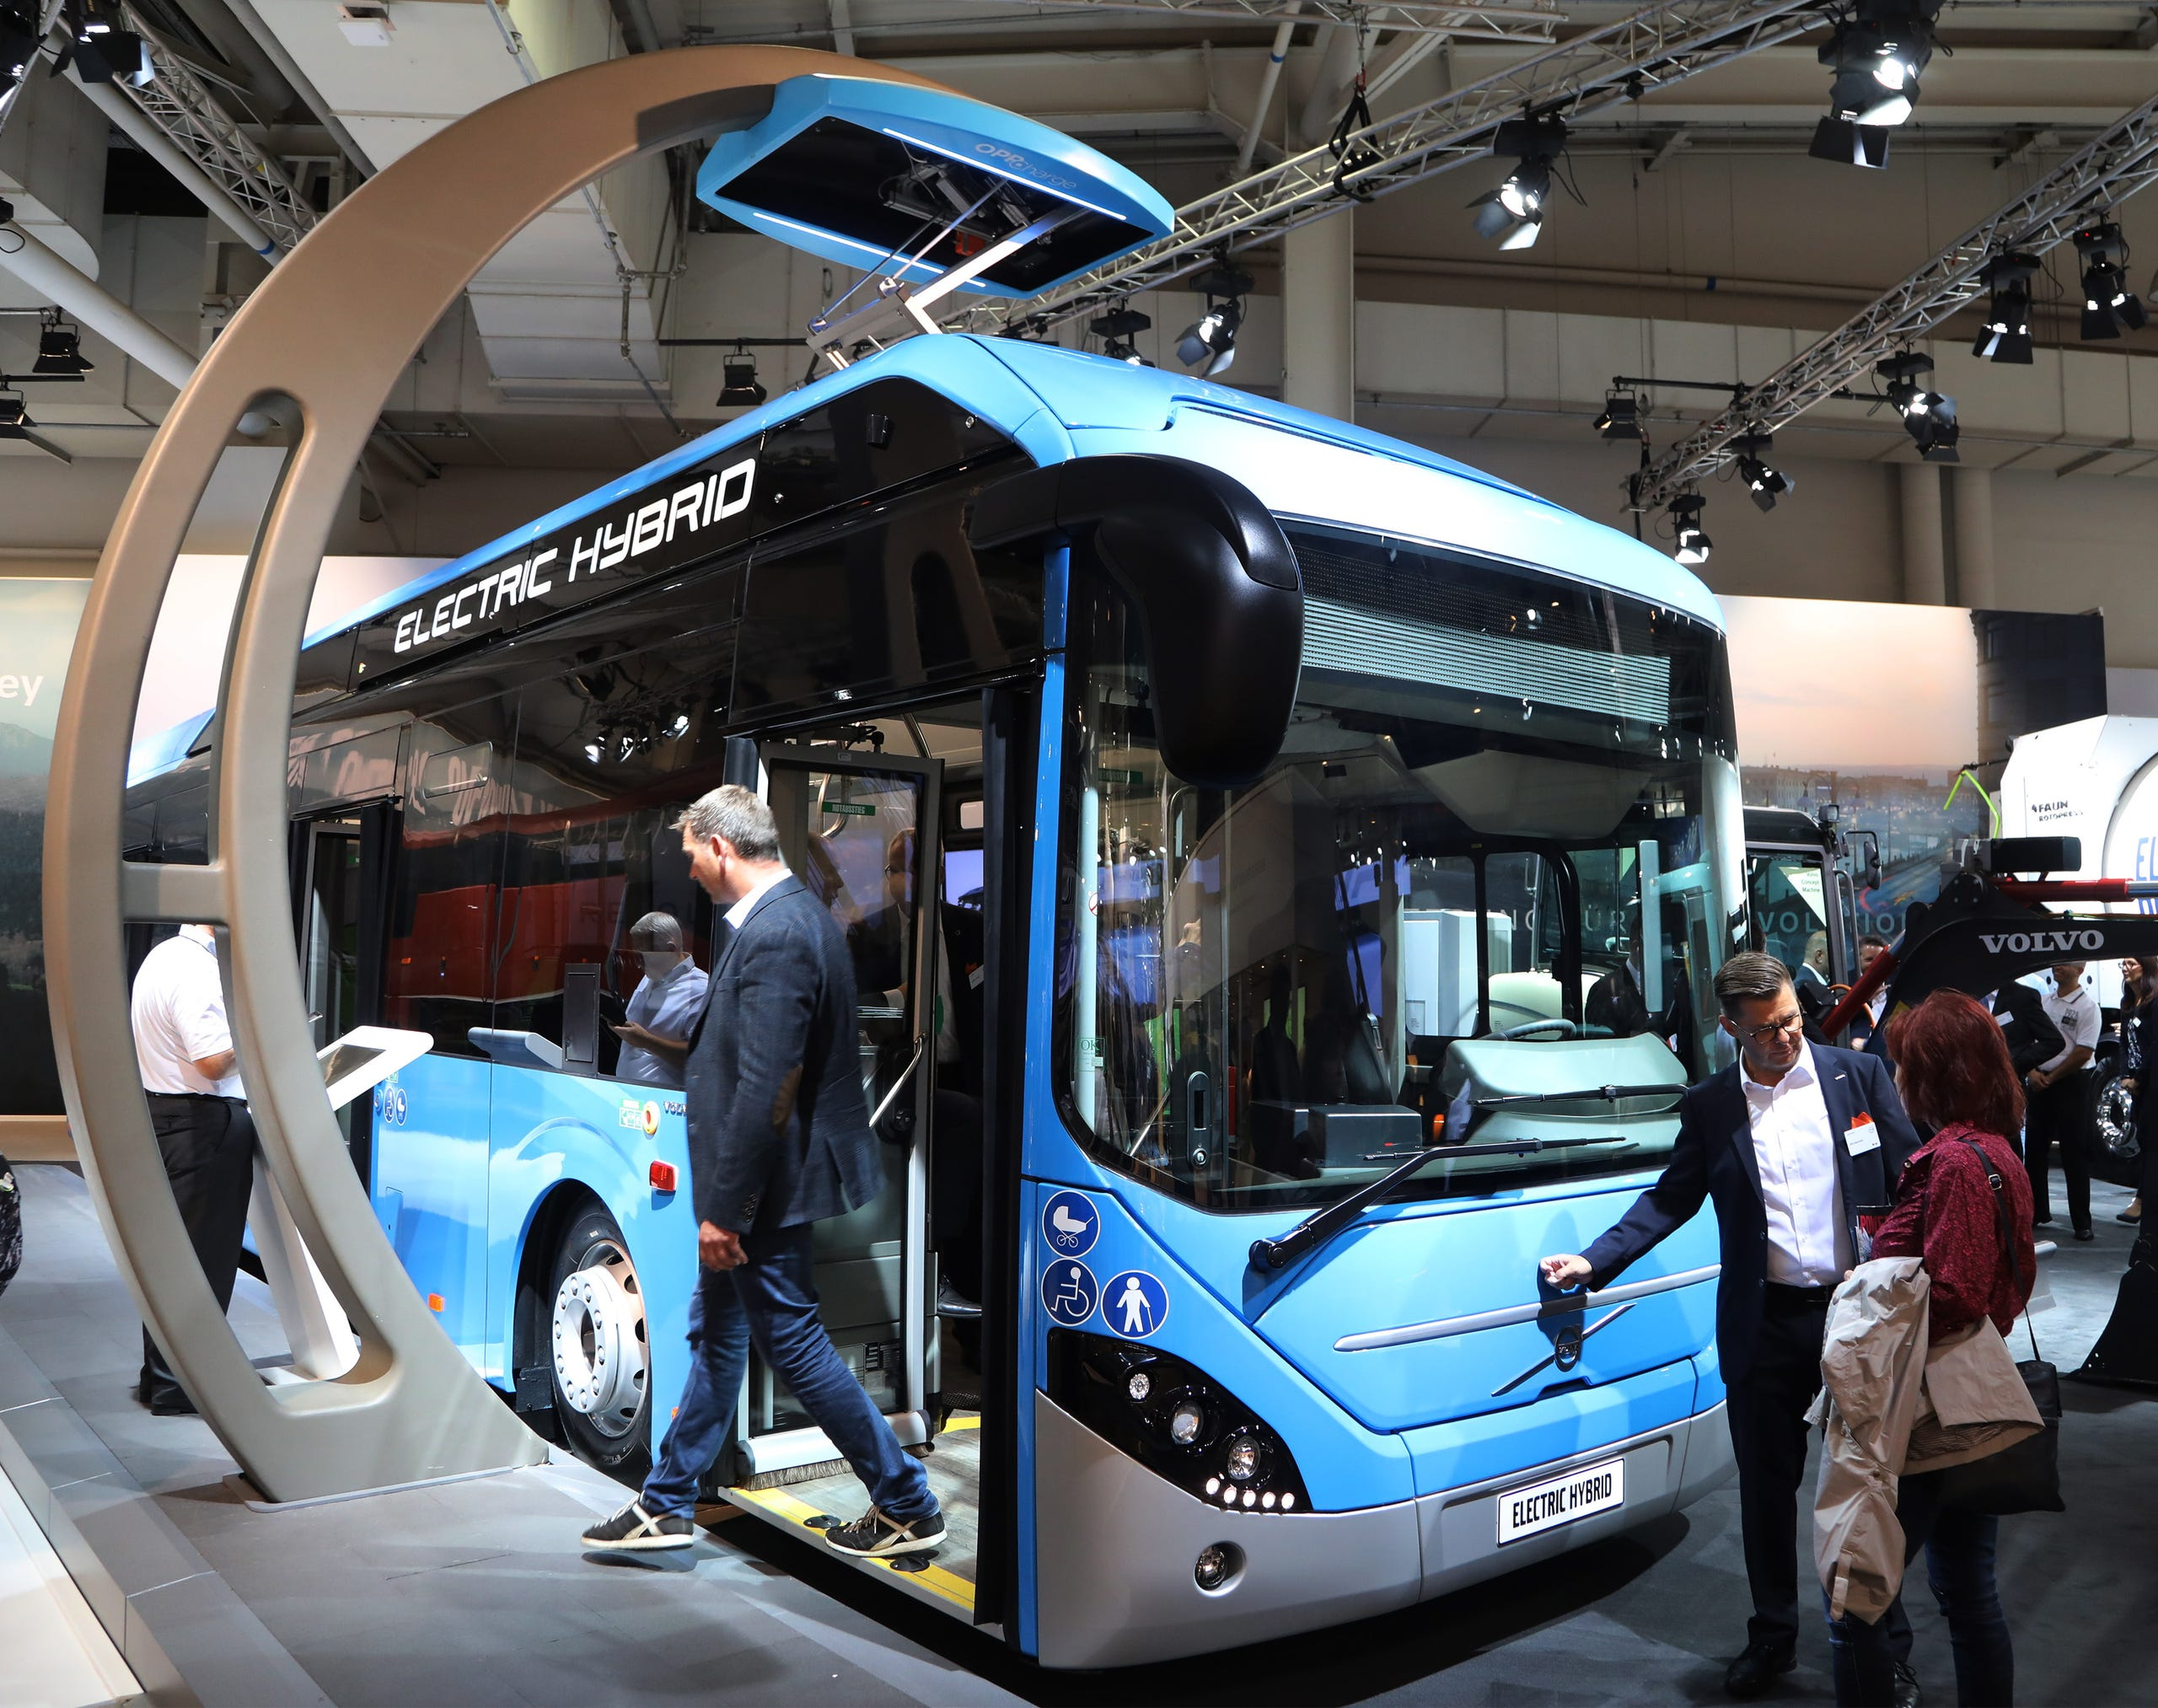 fd9874cffd An electric powered bus at the Volvo booth.